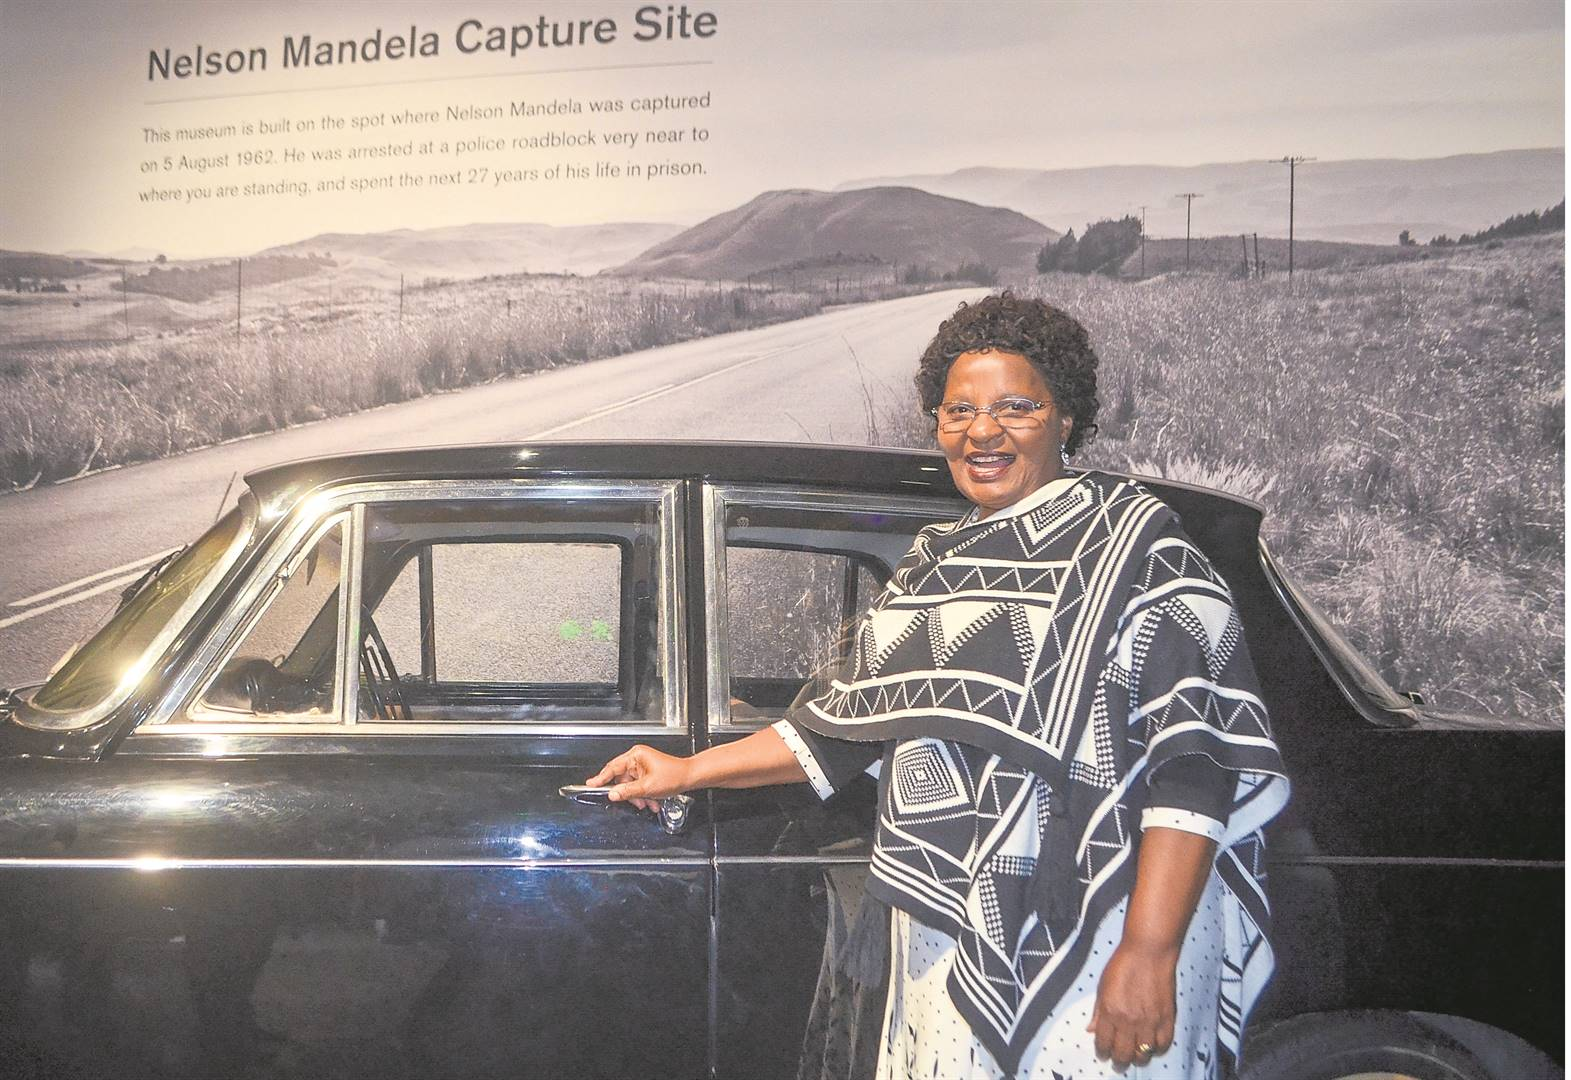 uMgungundlovu District Mayor Thobekile Maphumulo standing next to an Austin Westminster car like the one Nelson Mandela was travelling in when he was arrested in 1962. PHOTO: NOKUTHULA NTULI